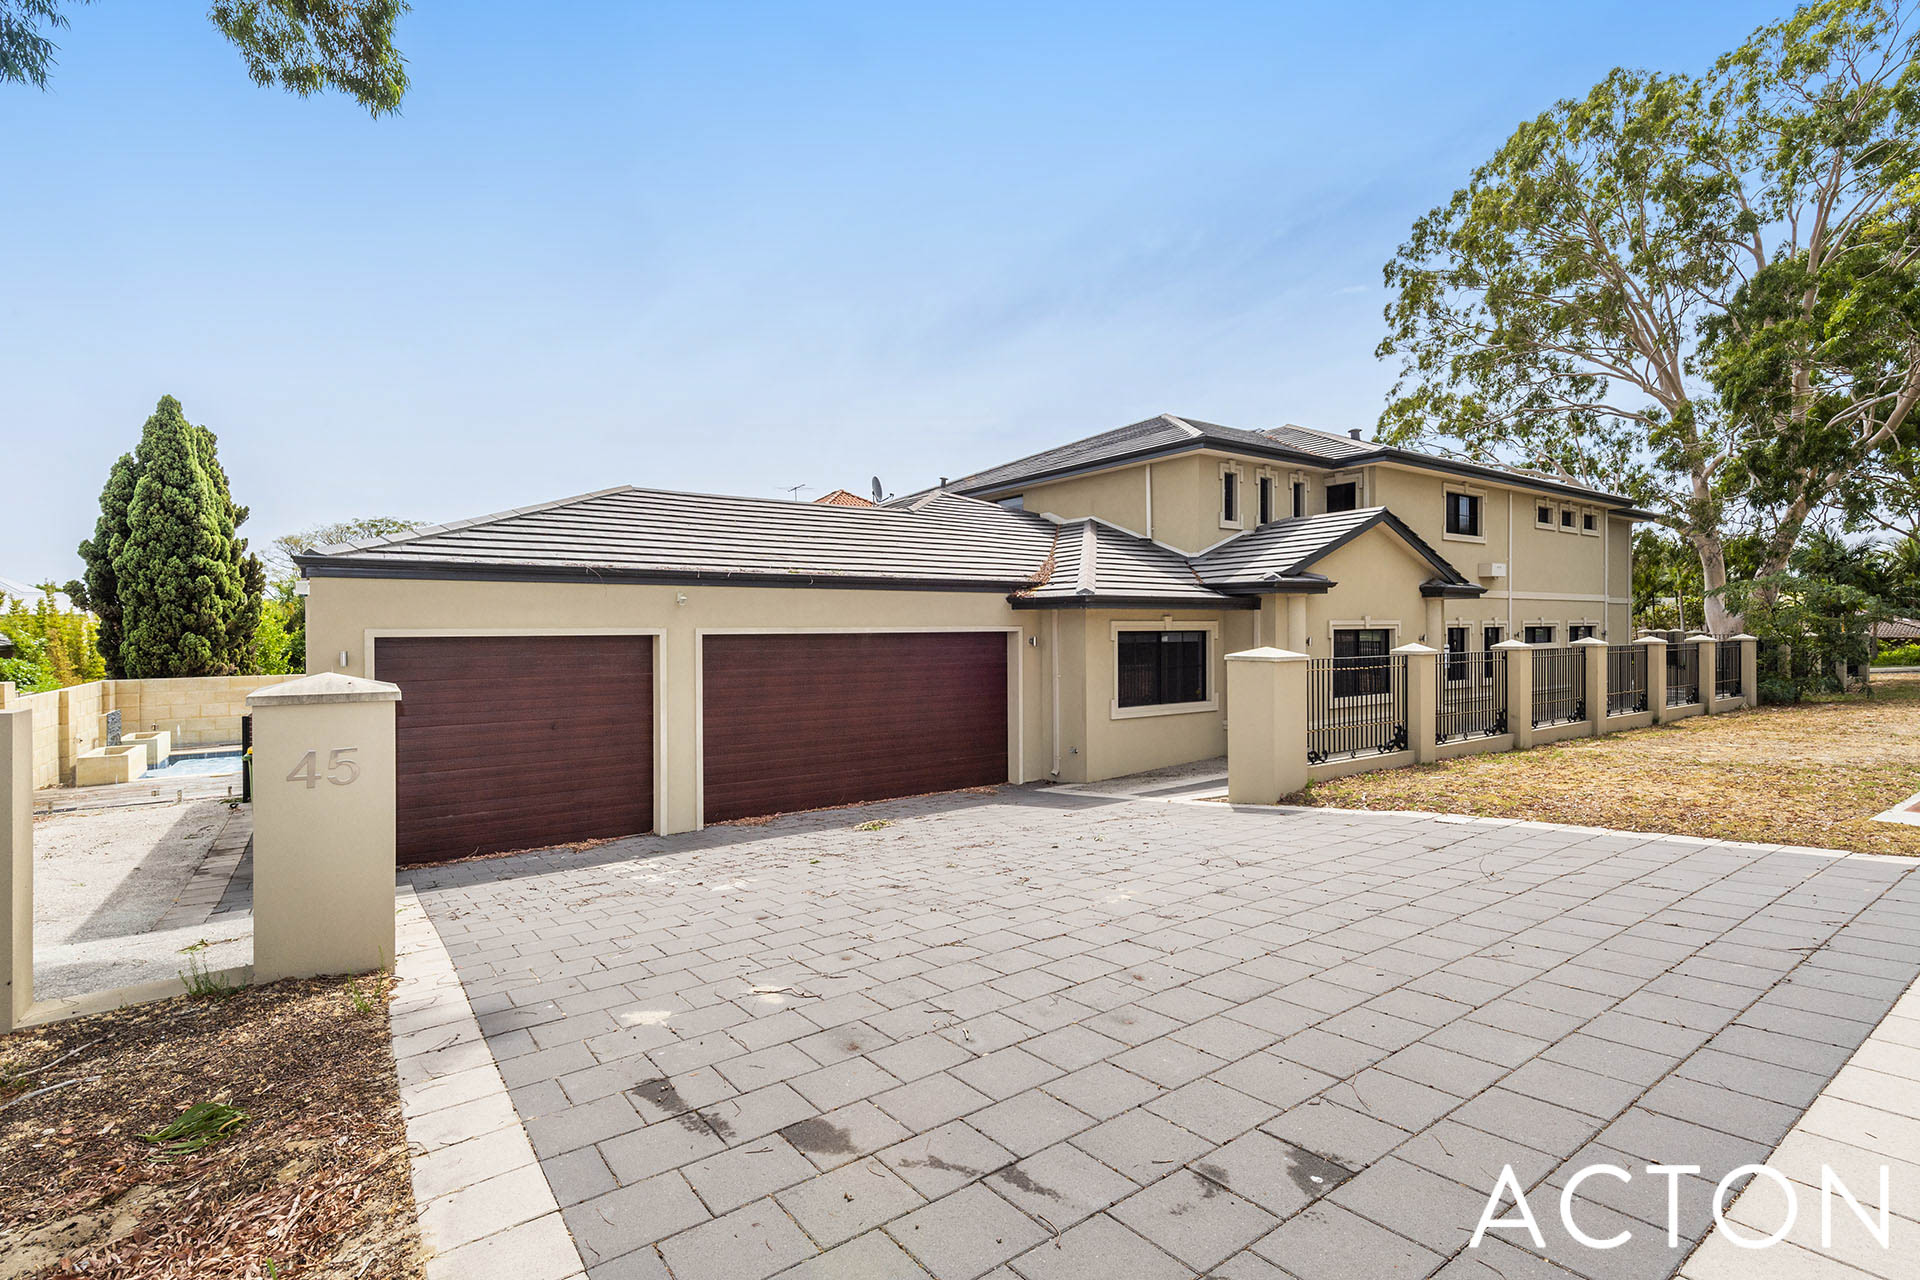 45 Matheson Road Applecross - House For Sale - 20517088 - ACTON Applecross